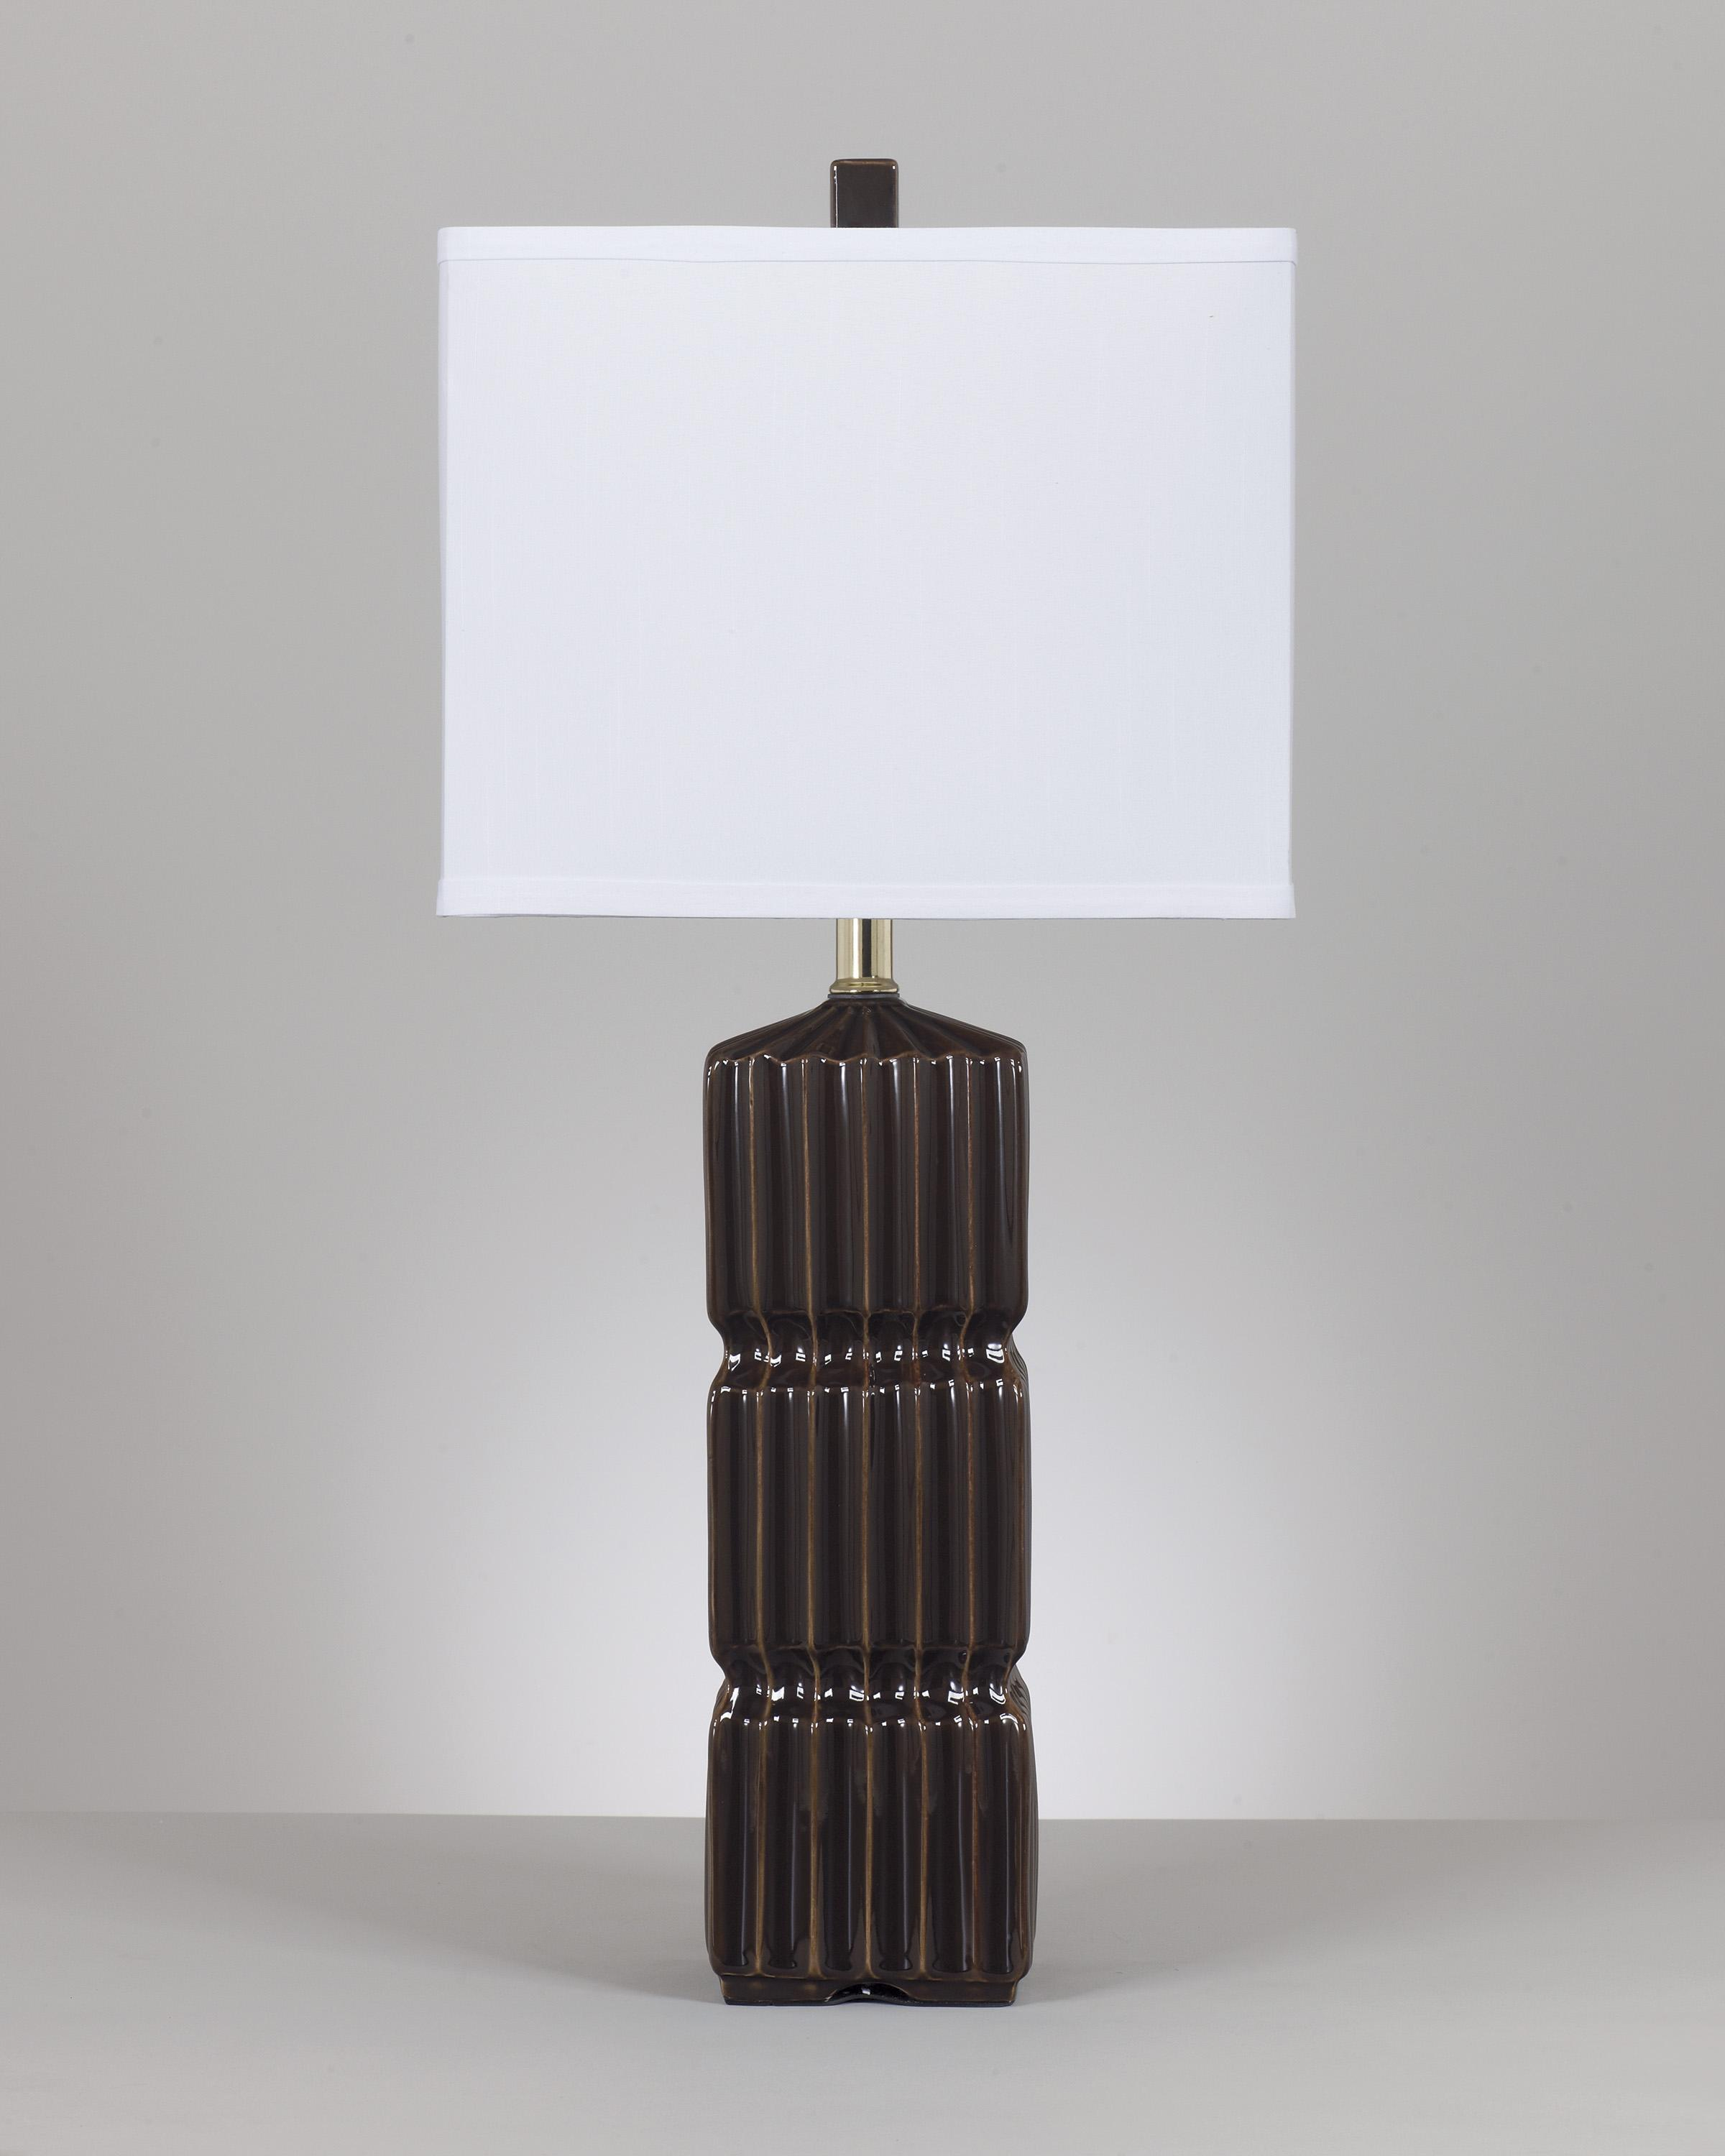 Signature Design by Ashley Lamps - Contemporary Set of 2 Ranissa Ceramic Table Lamps  - Item Number: L117914